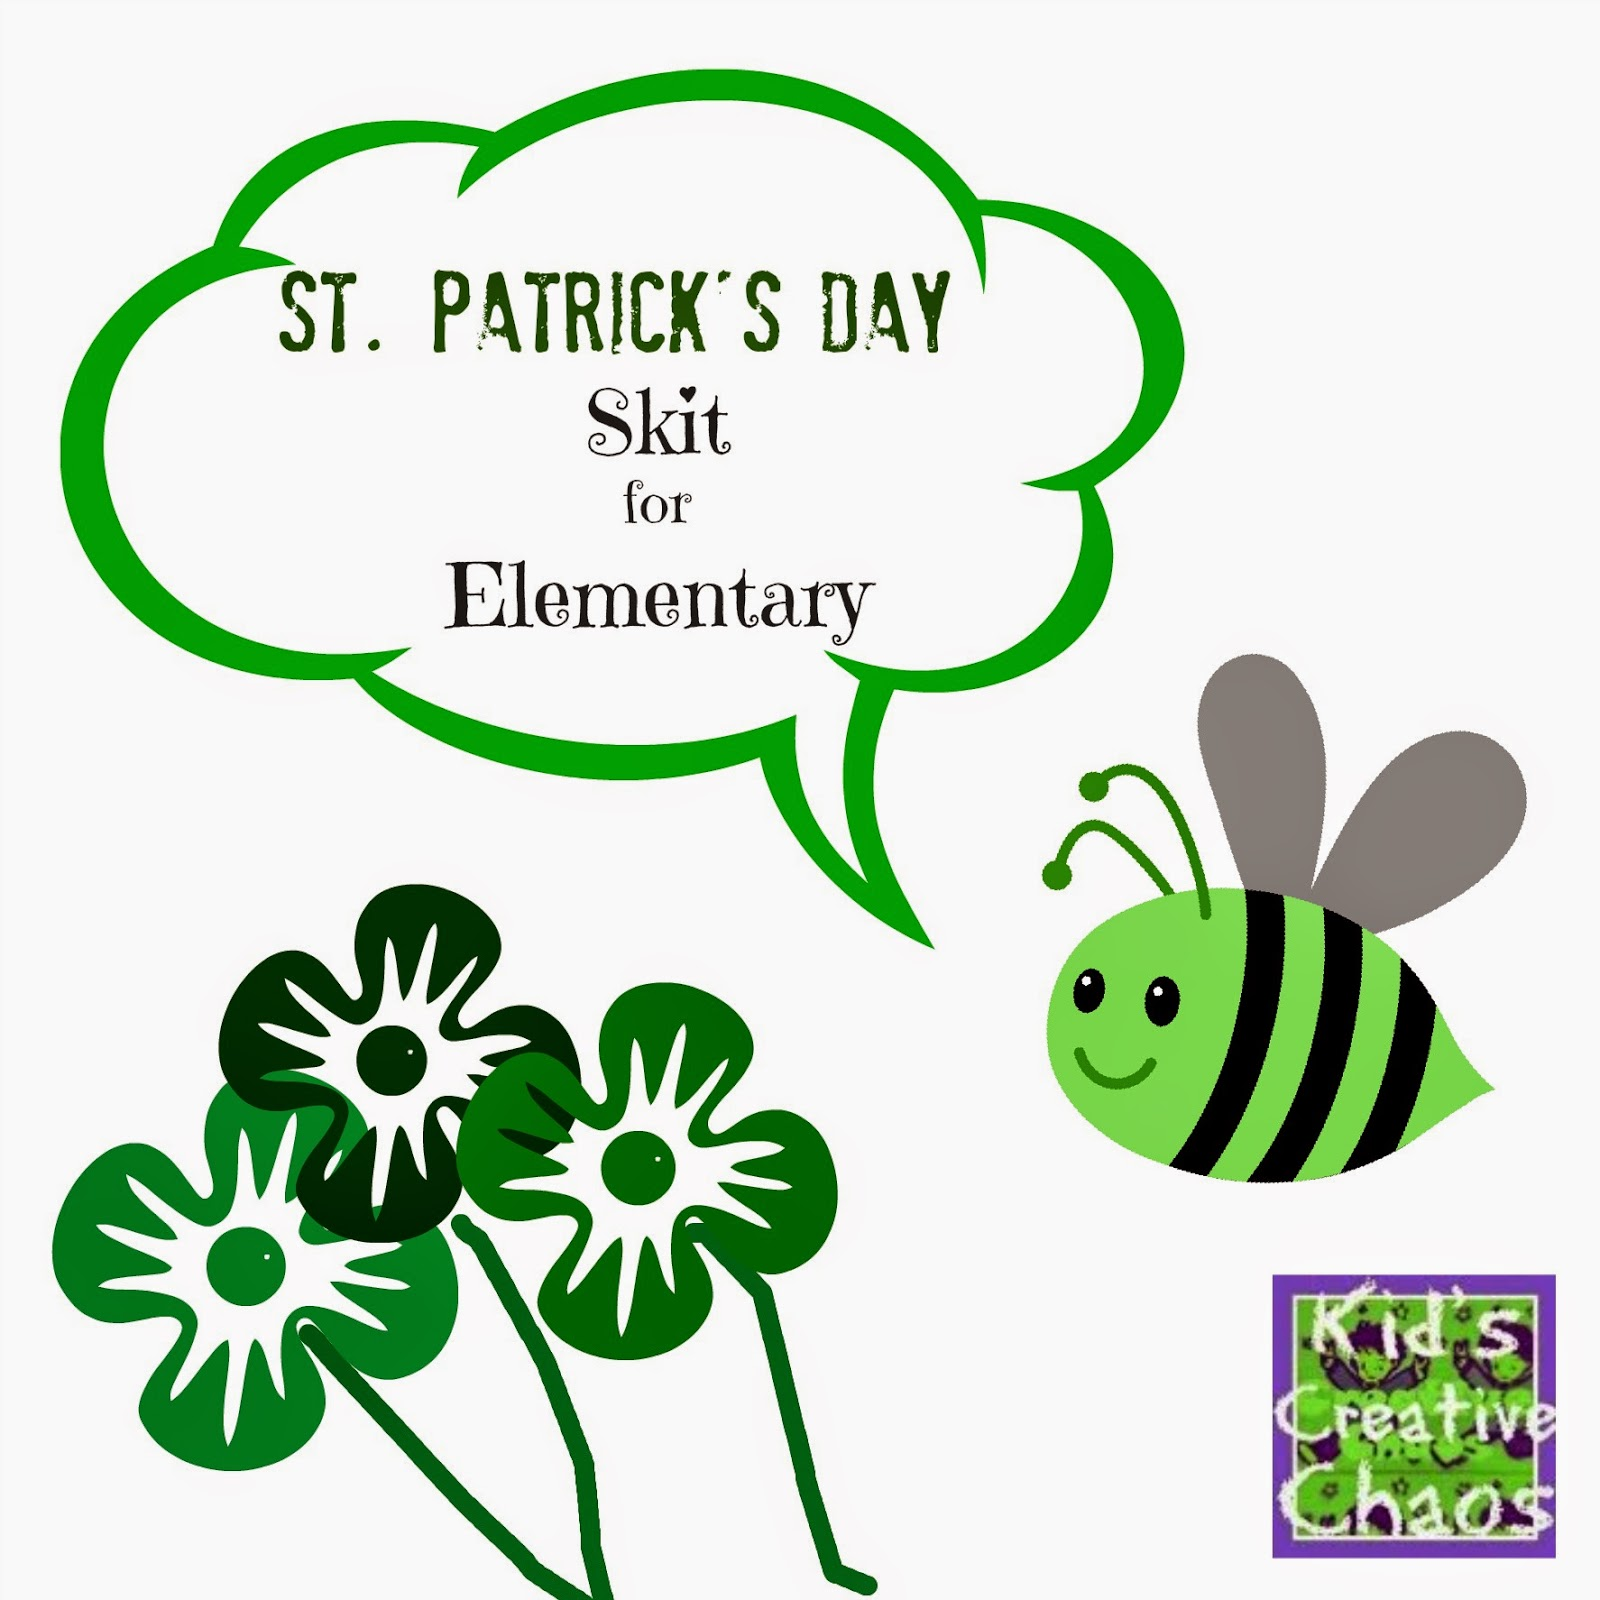 Saint Patrick's Day Play for Elementary Students